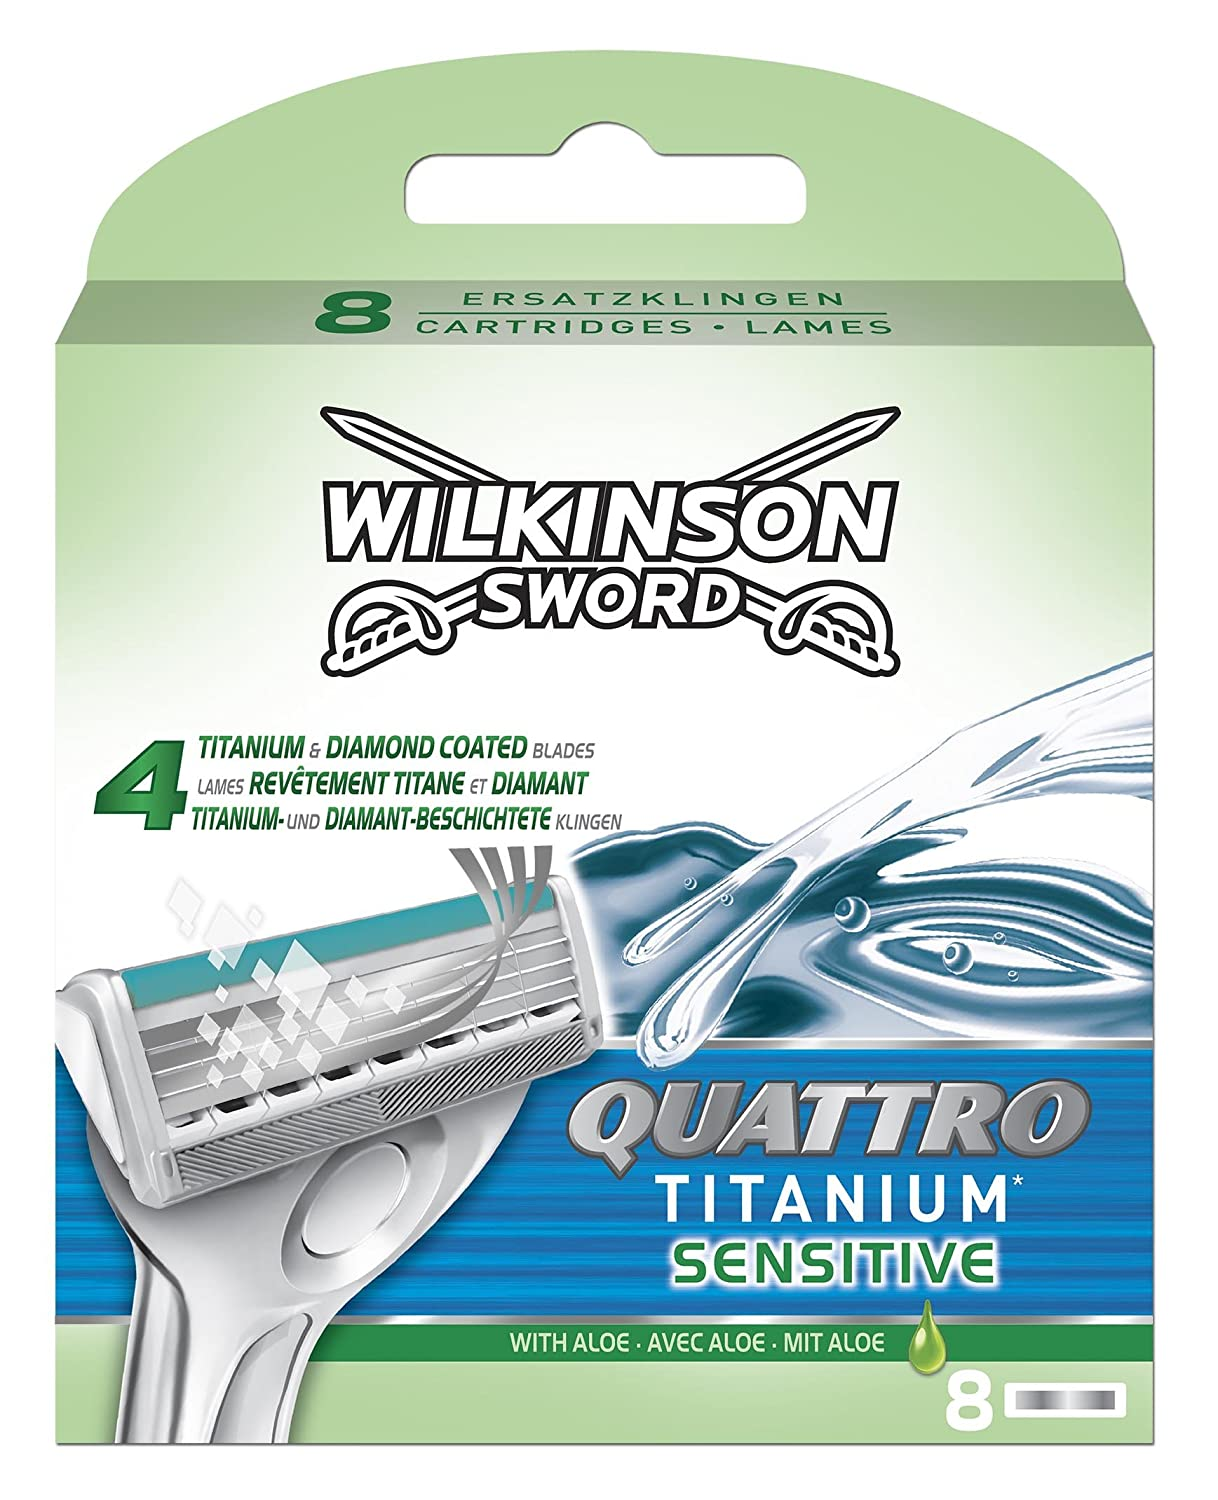 Wilkinson Sword Quattro Titanium Sensitive Razor Blades - Pack of 8 Blades HealthCentre 70050990